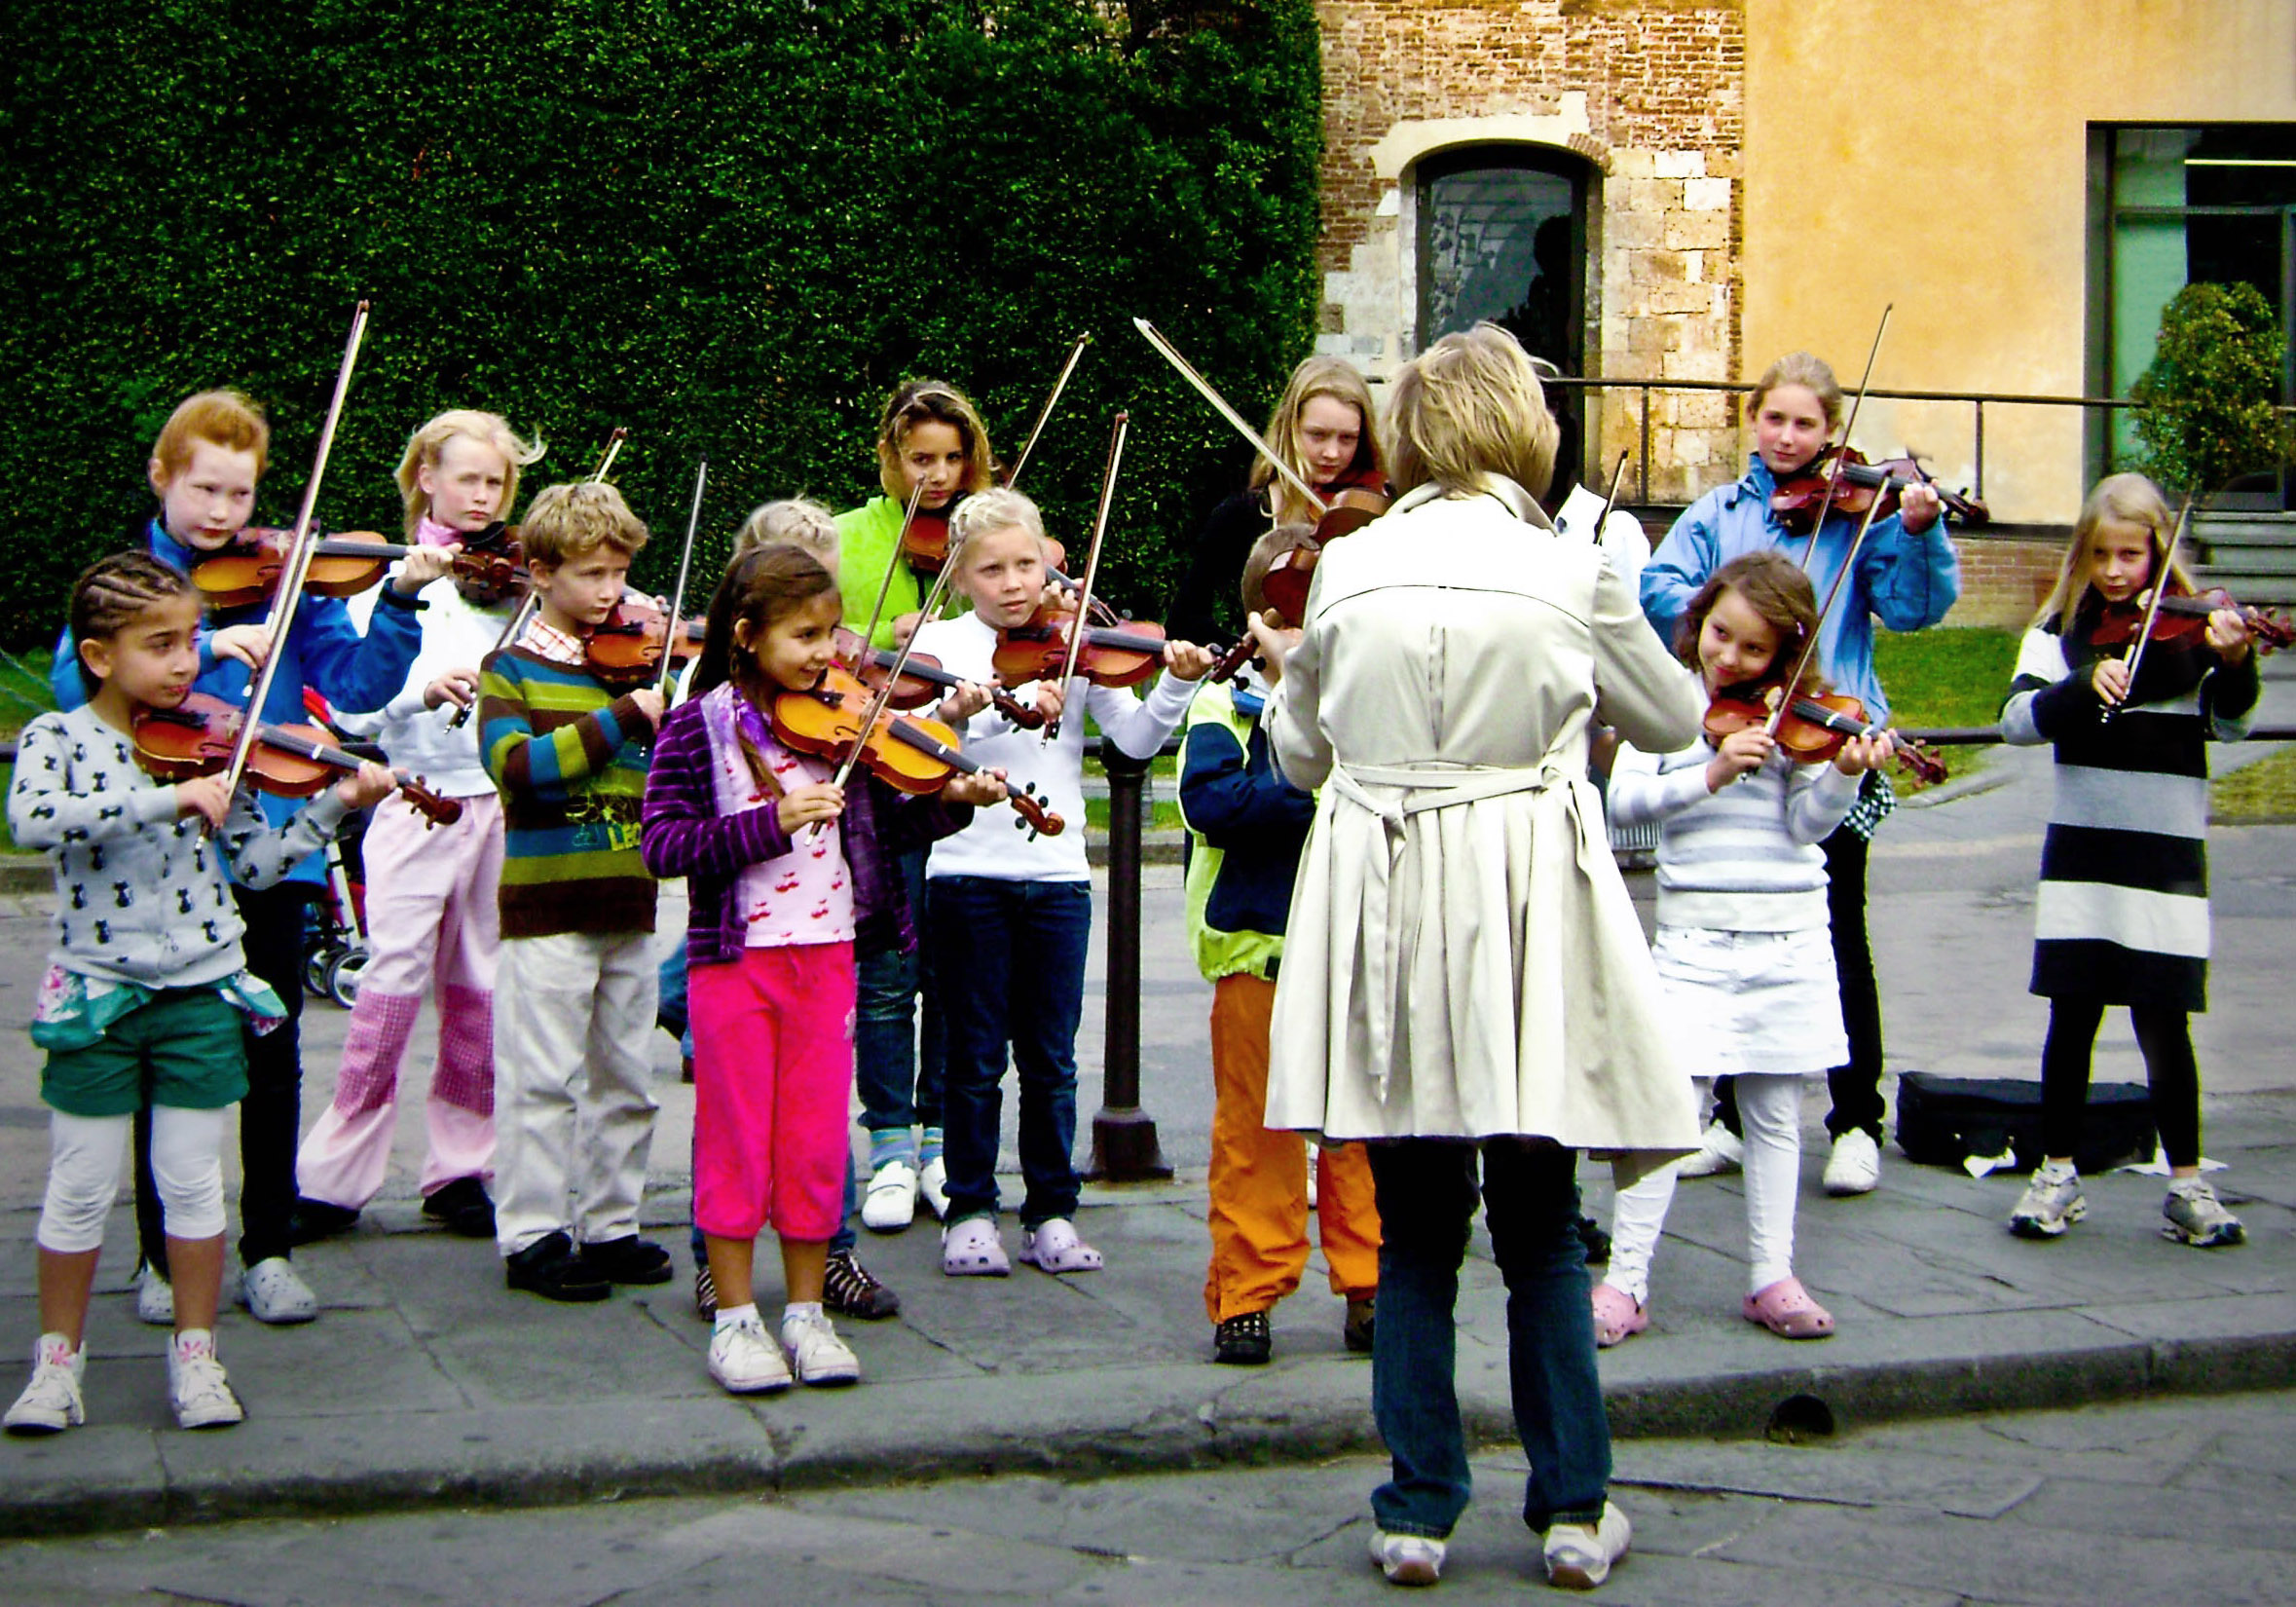 Teacher and a group of children of many ages all playing violin in front of an old brick building